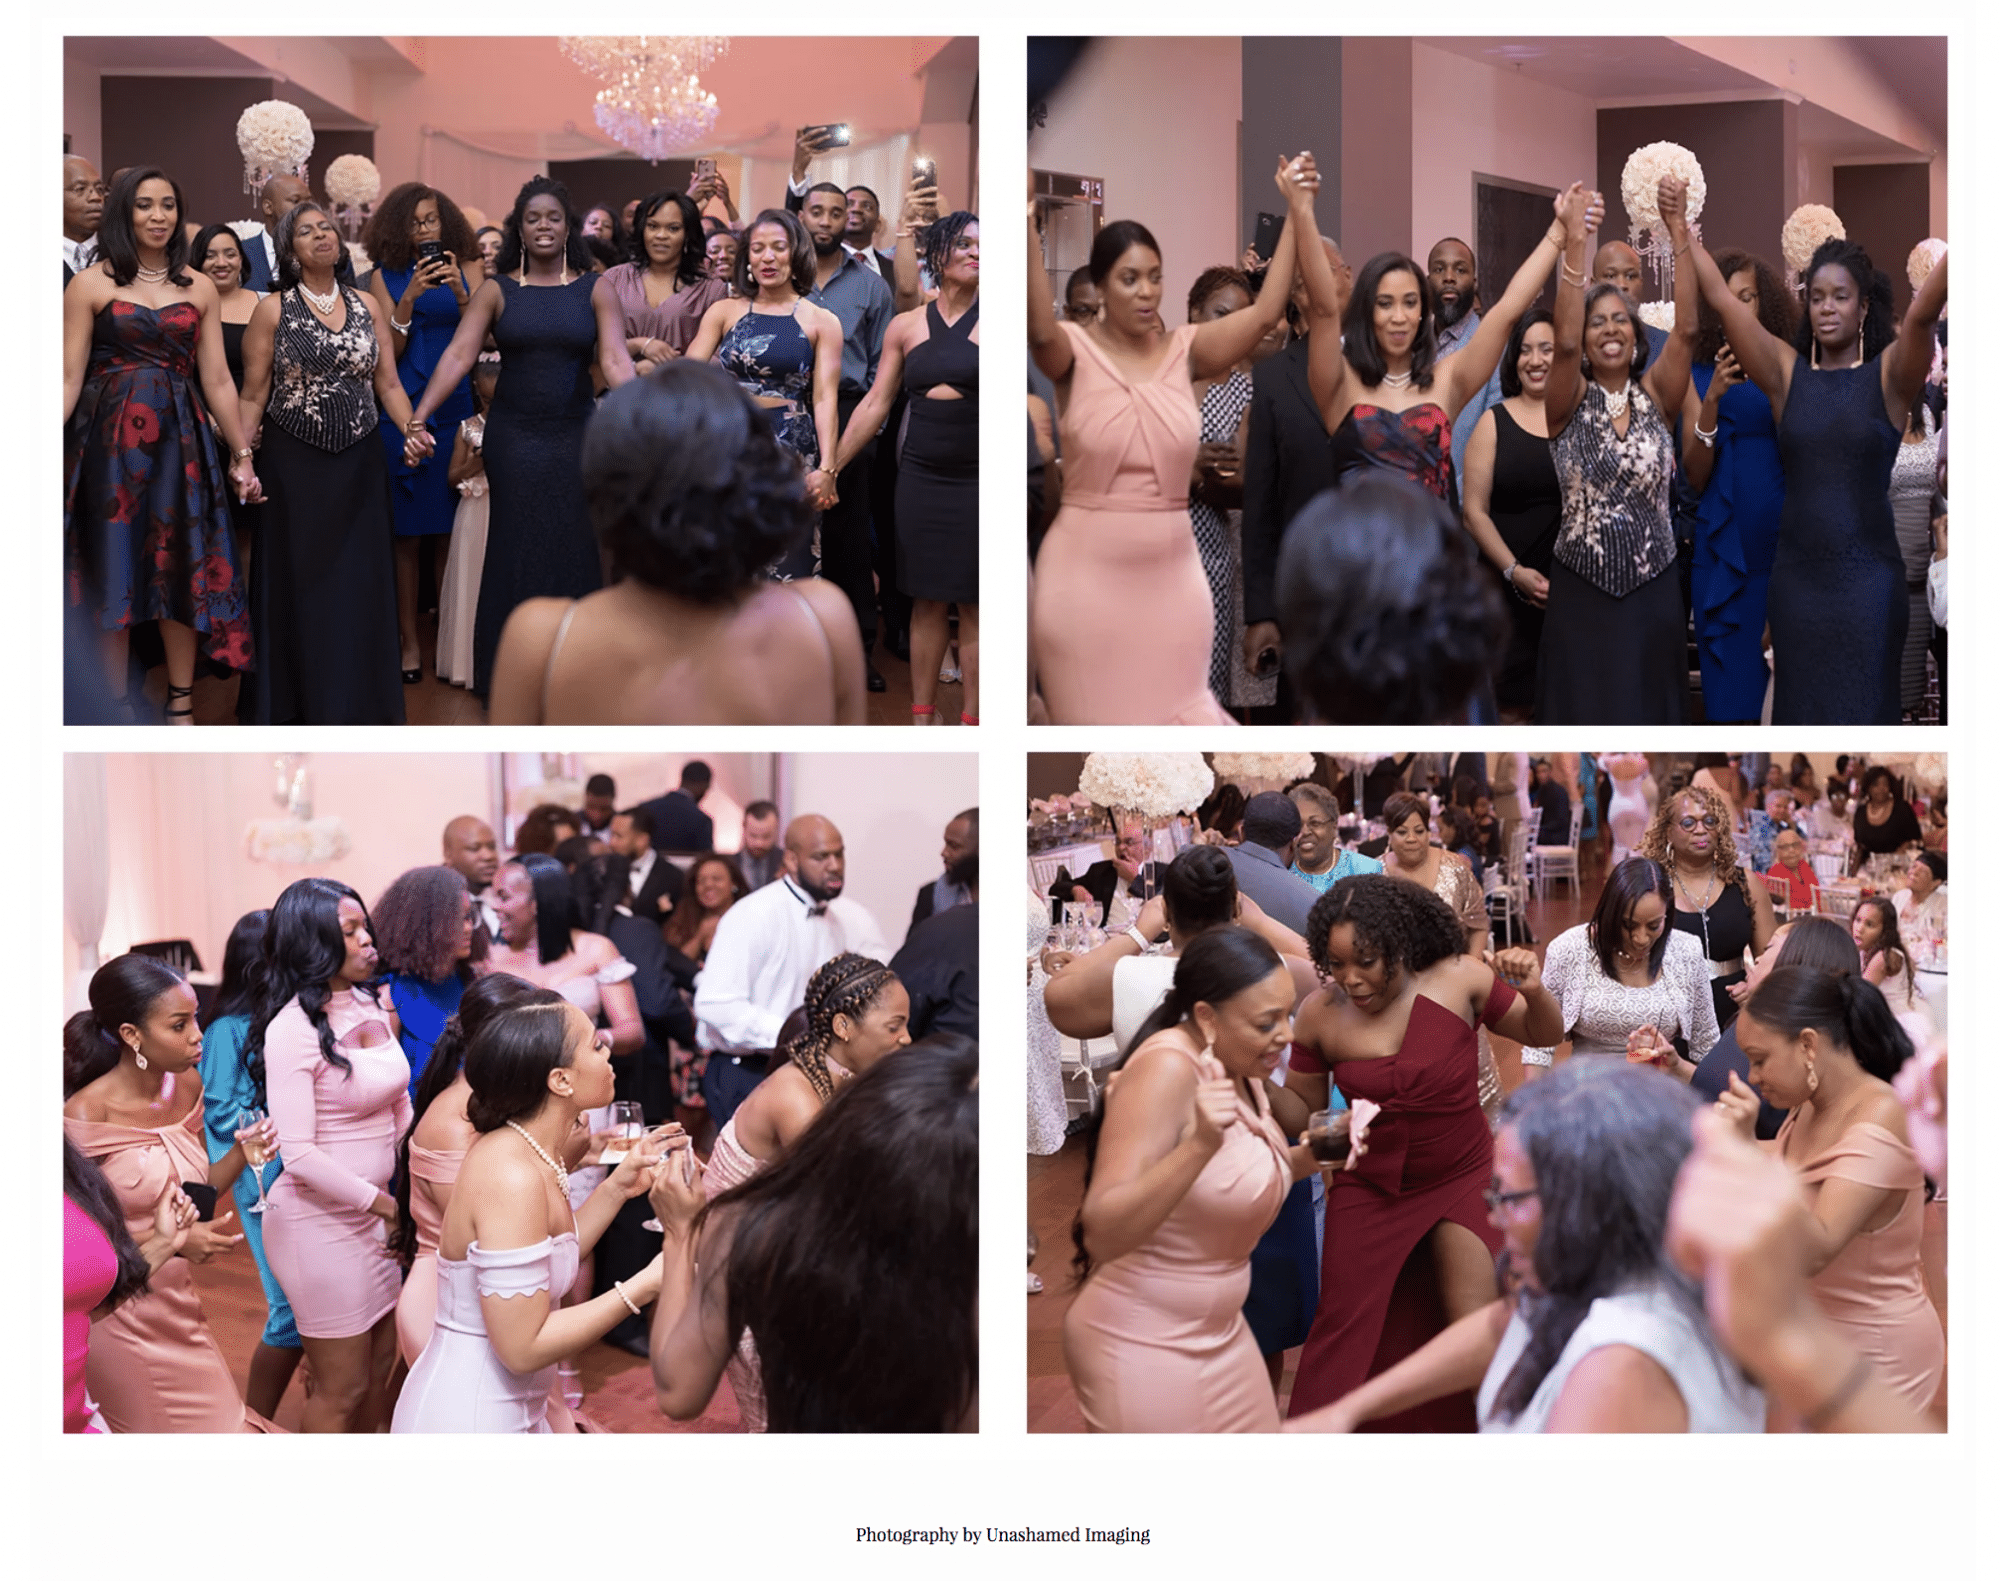 collage of candid moments in a wedding reception